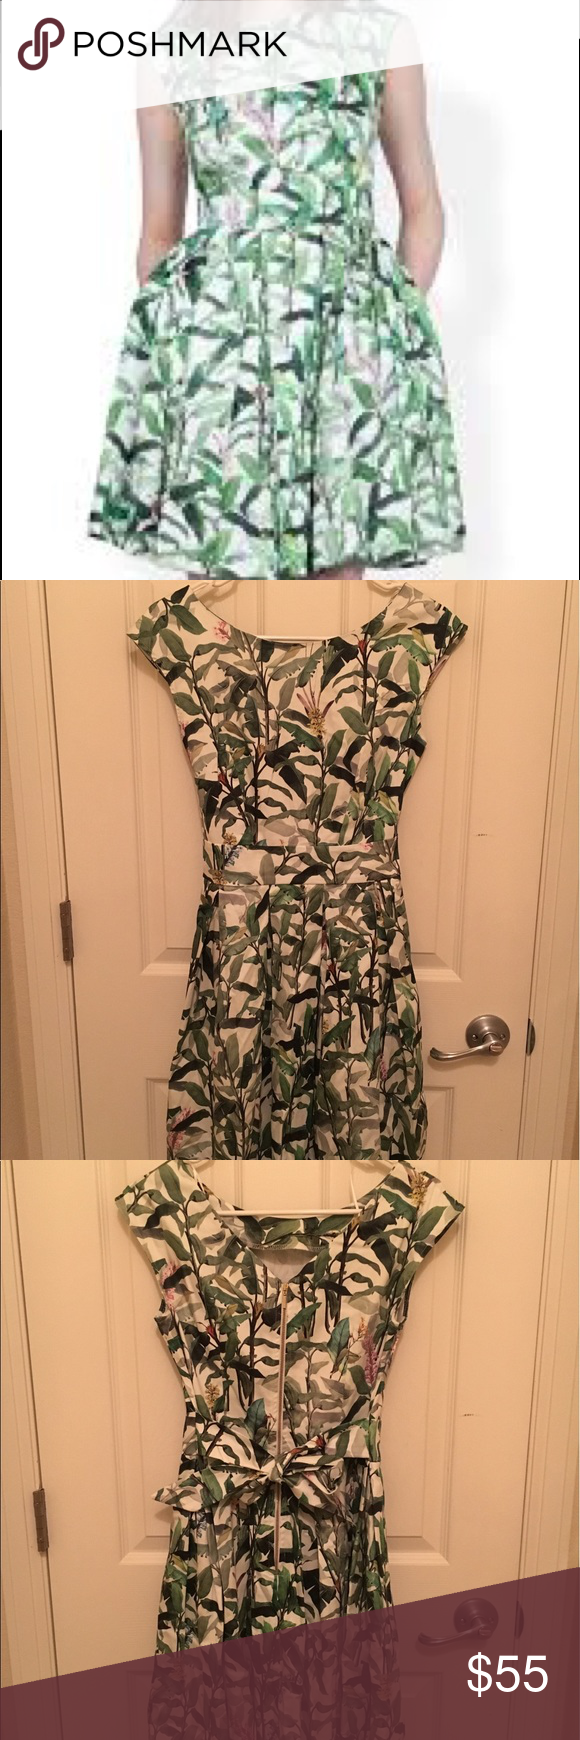 Closet London Leaves Dress Like new condition, only worn